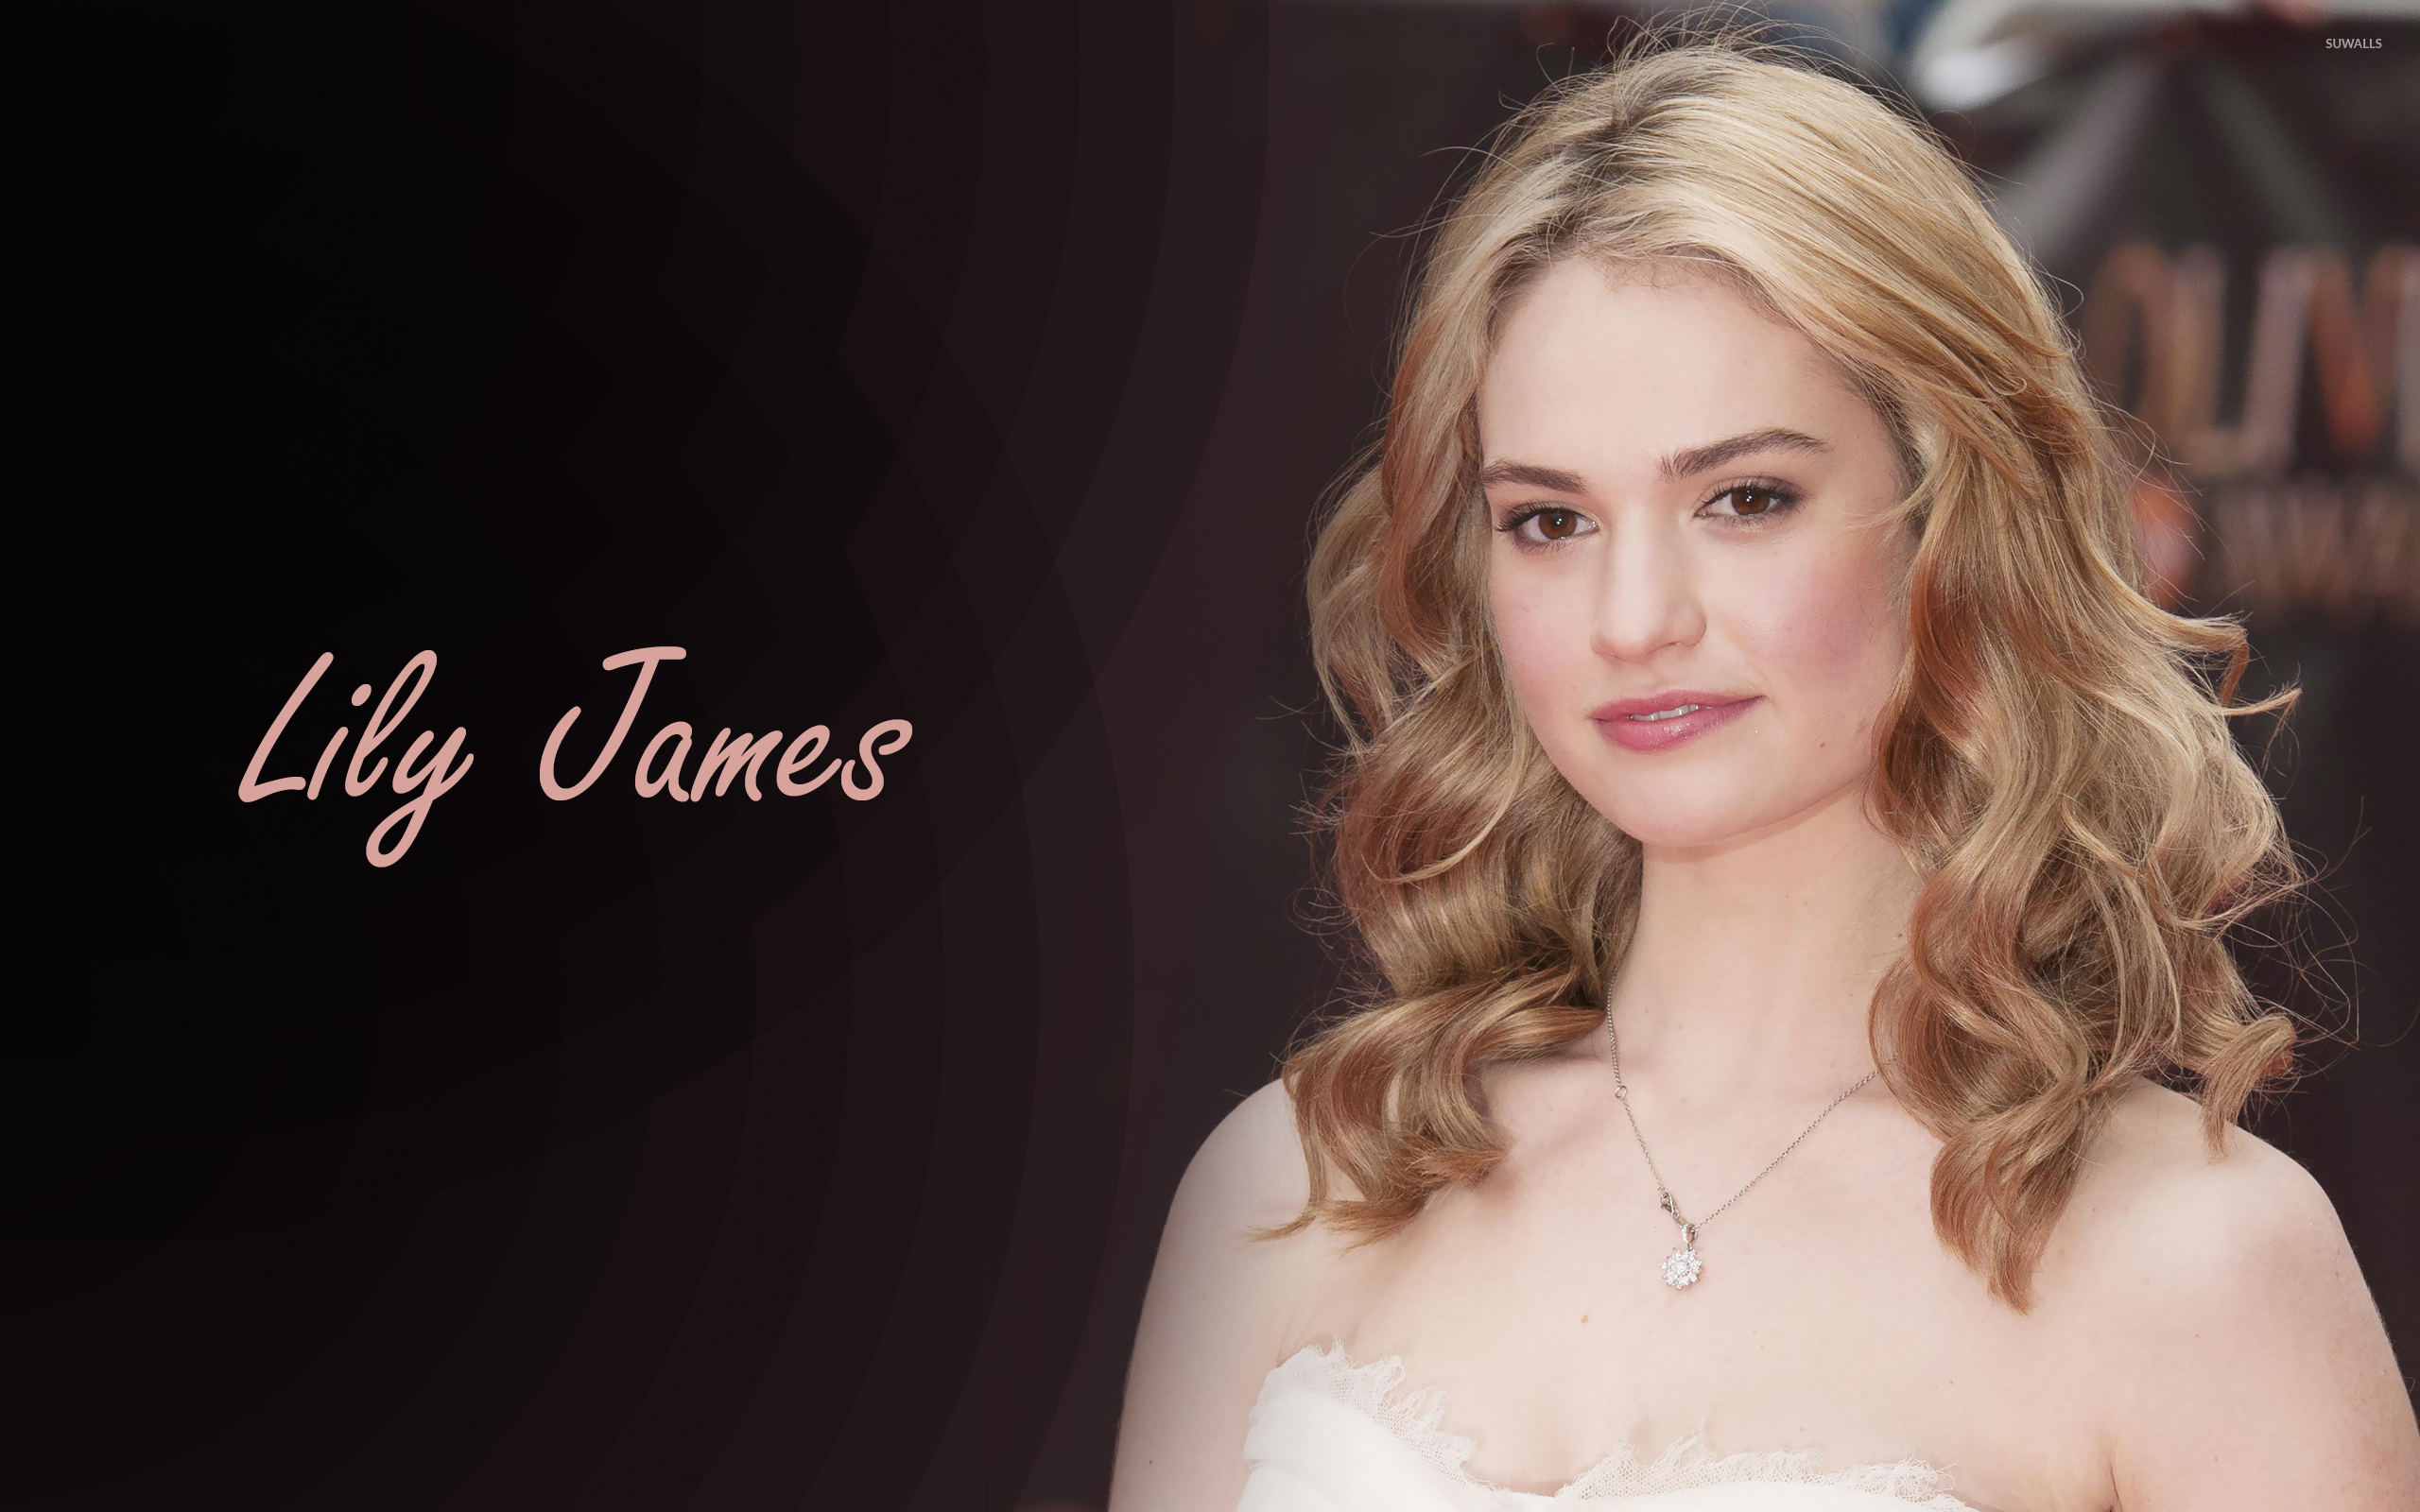 2560x1600 - Lily James Wallpapers 34